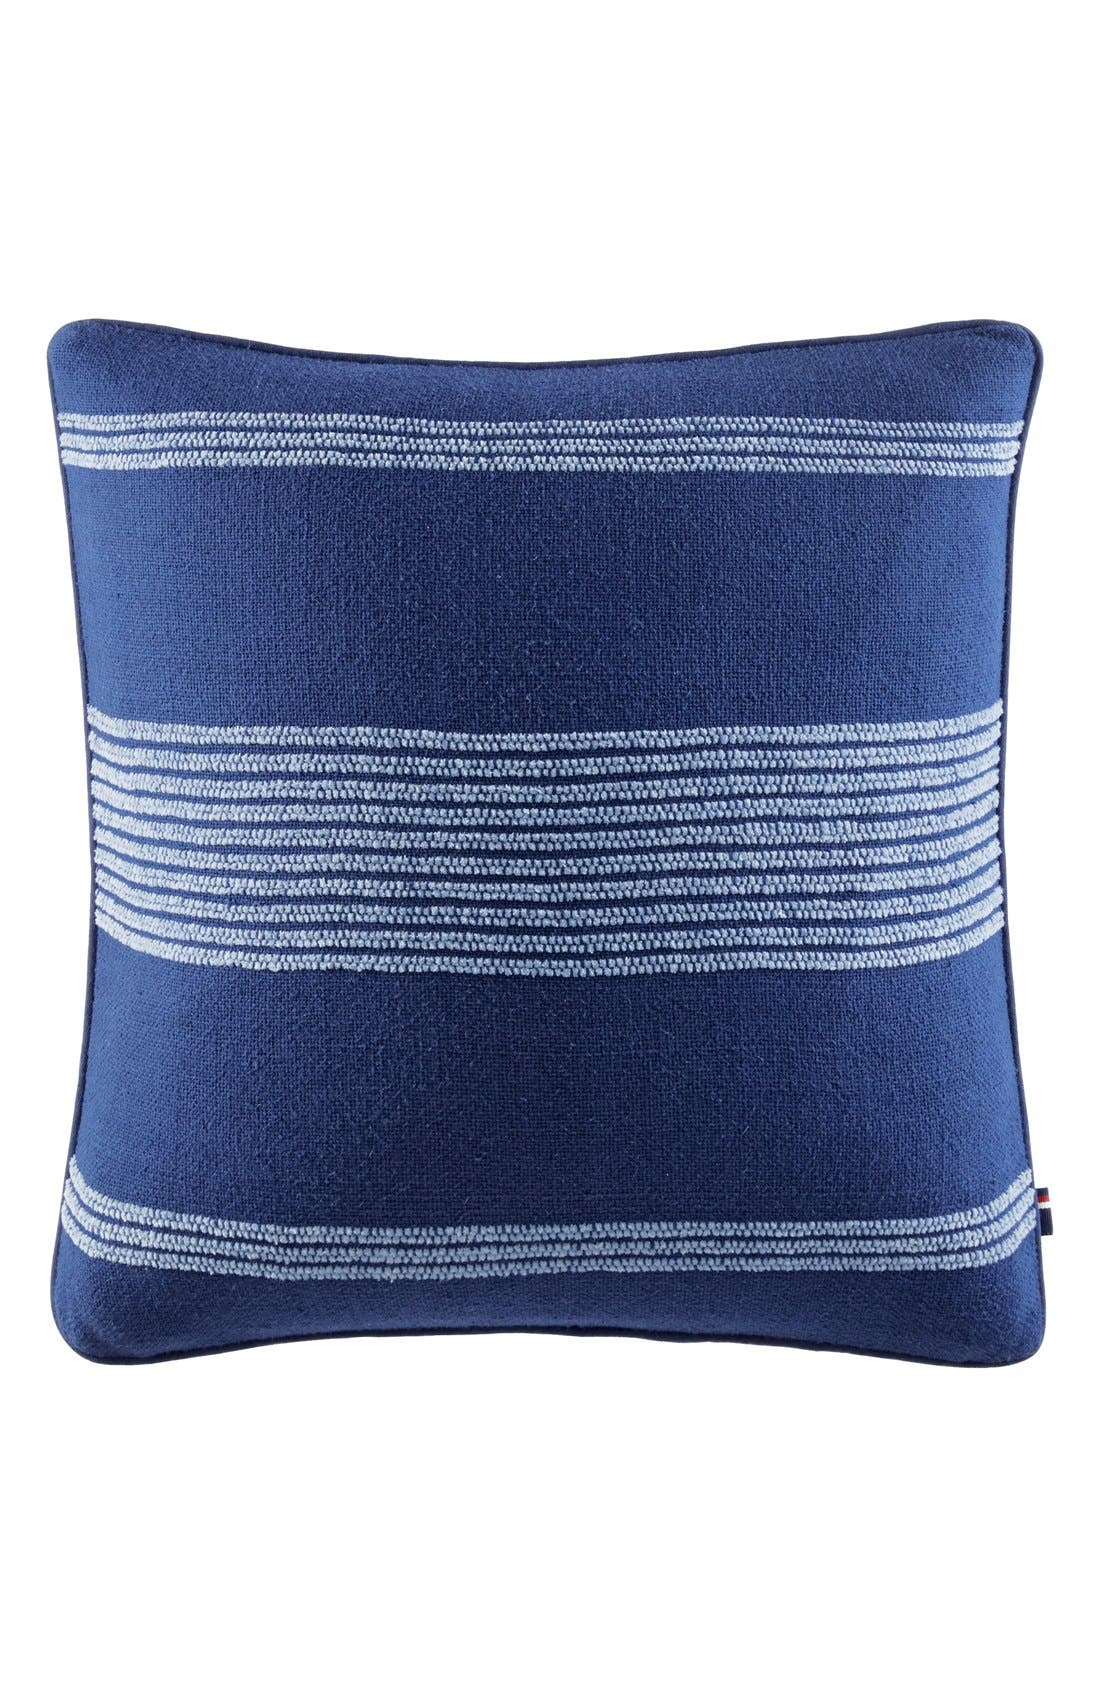 Main Image - Tommy Hilfiger Pacific Horizon Accent Pillow